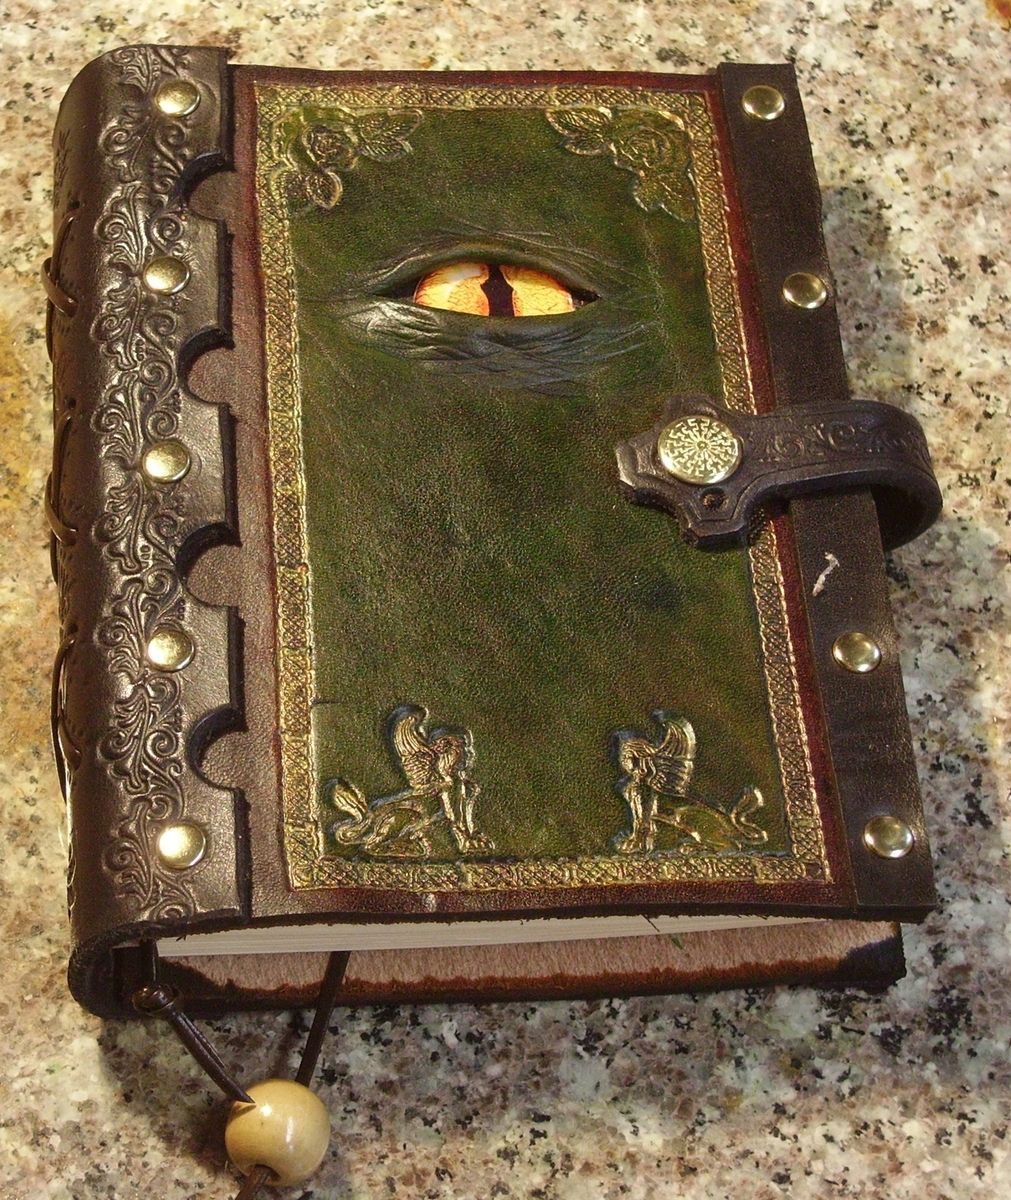 Handmade Story Book Cover : Handmade hand tooled leather journal with a reptilian